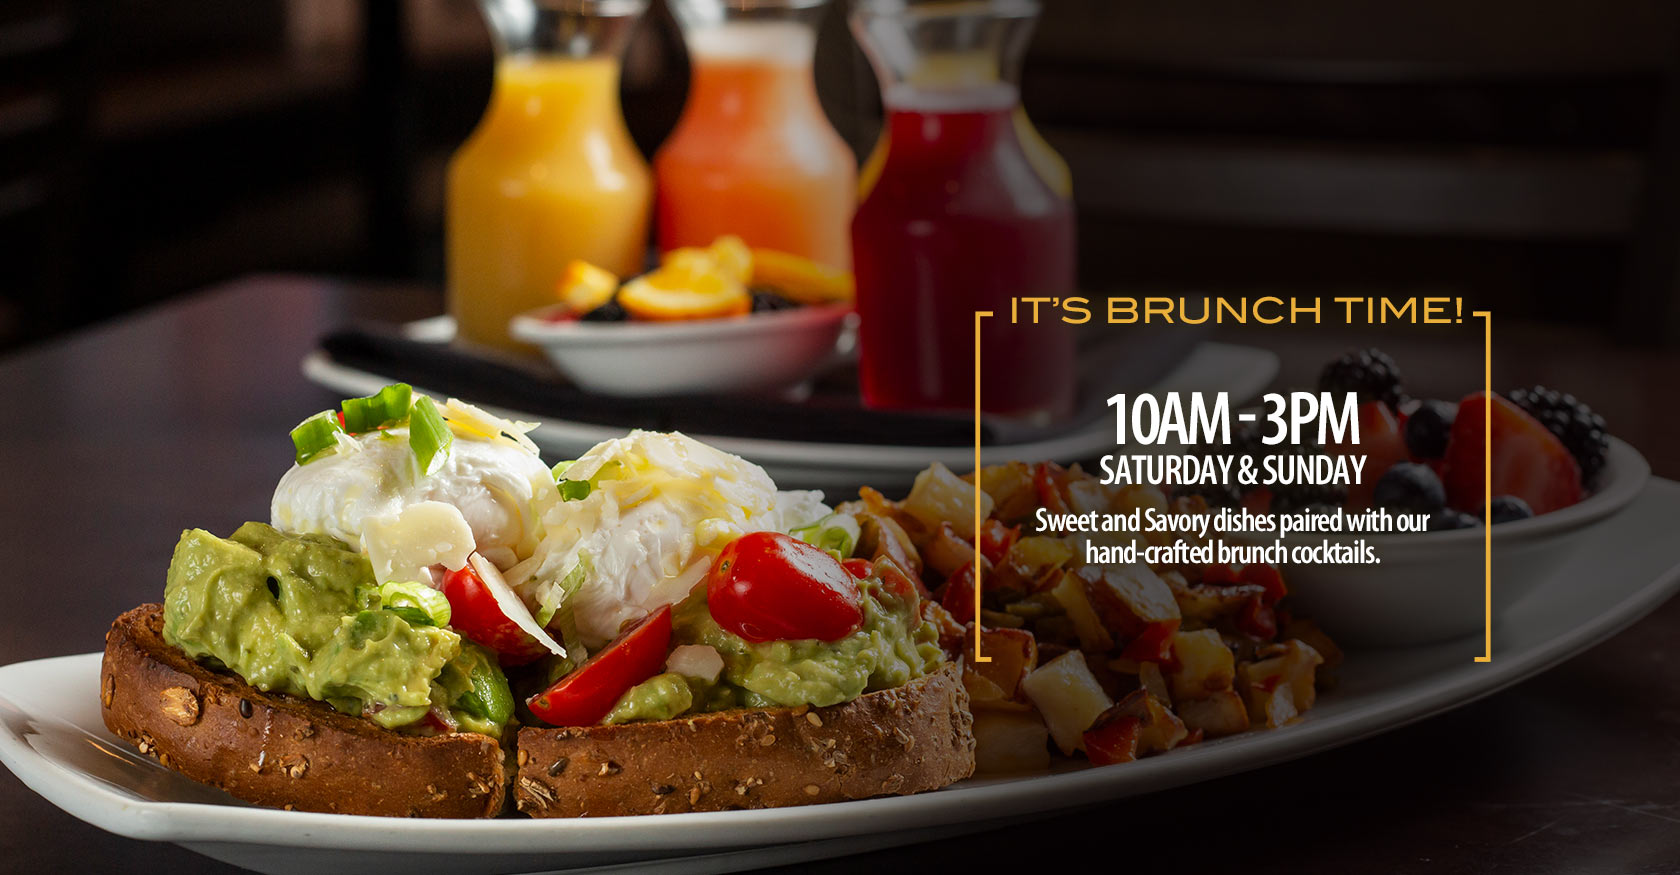 It's Brunch Time! 10 AM - 3 PM Saturday & Sunday Sweet and savory dishes paired with our hand-crafted brunch cocktails.